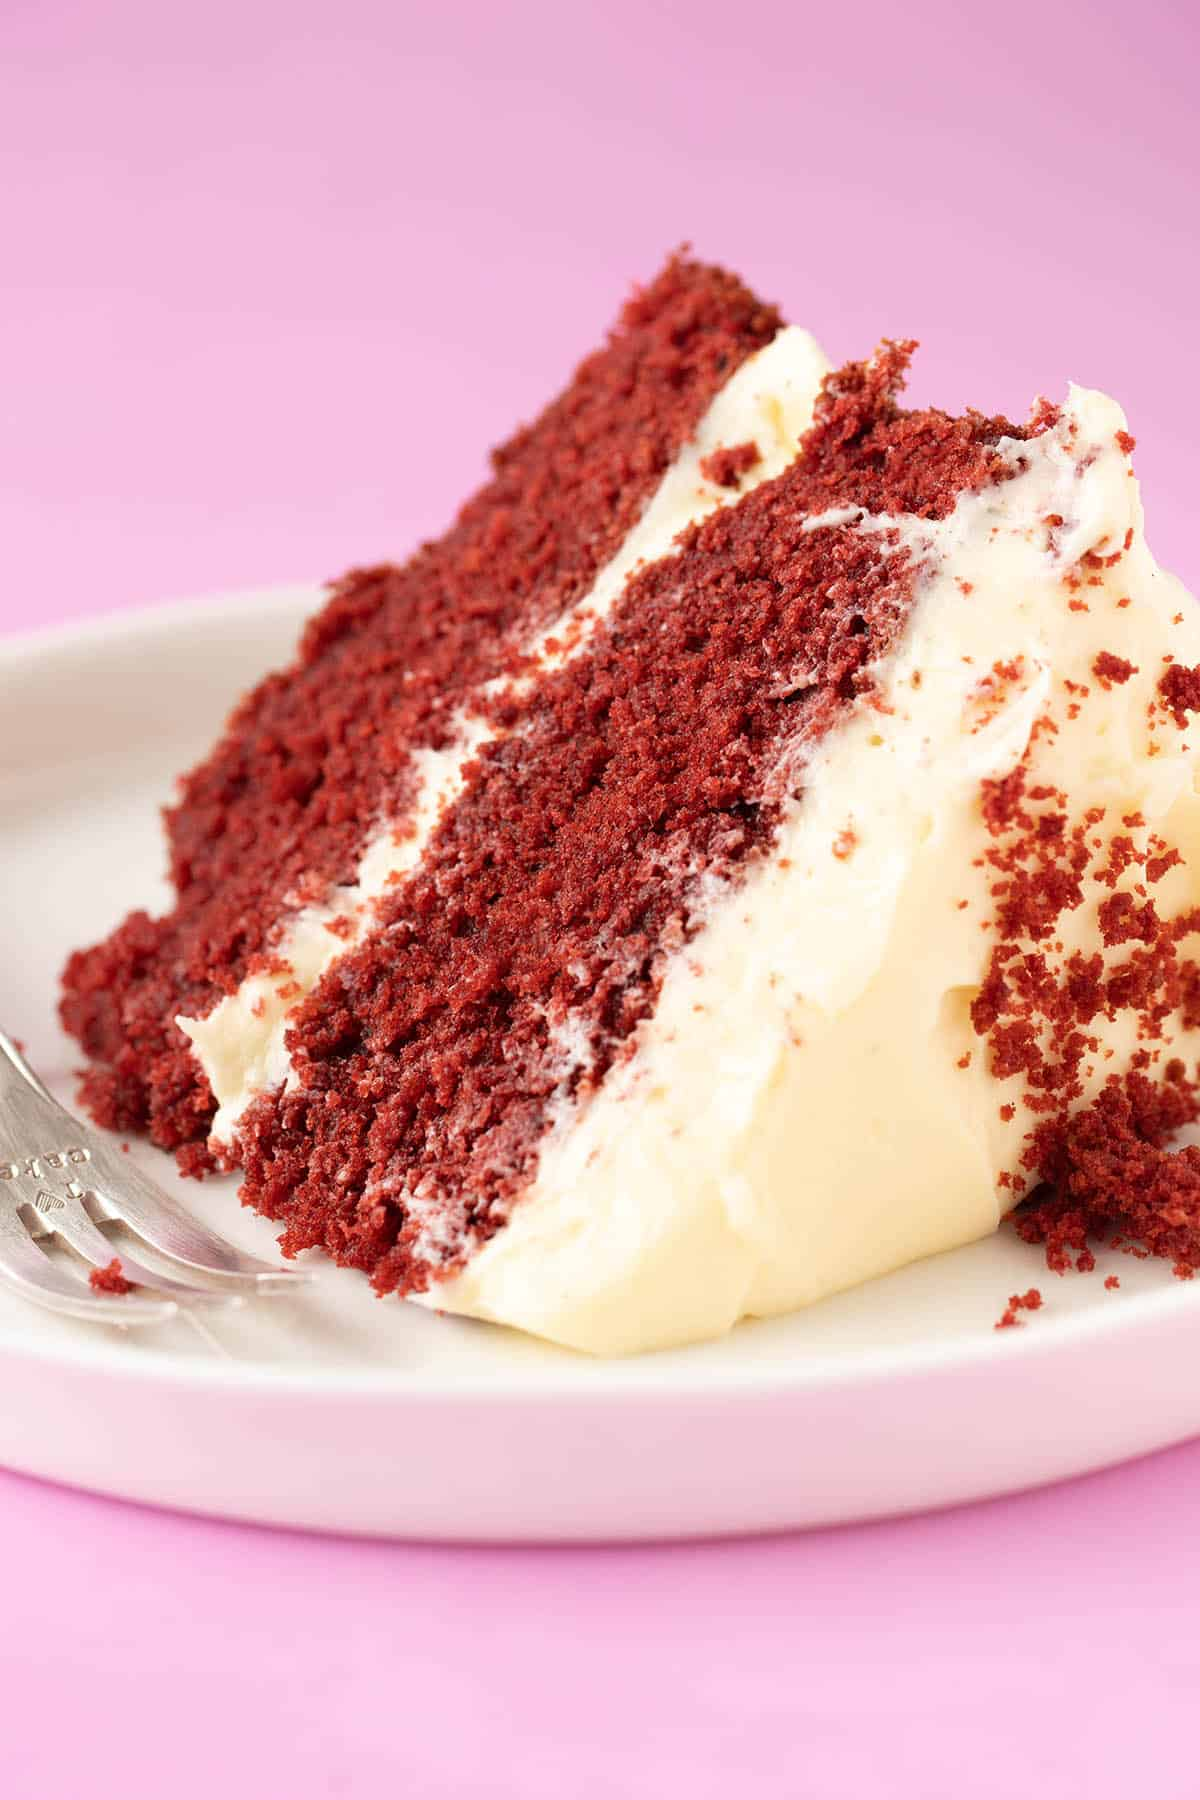 A beautiful slice of Red Velvet Cake on a pink background.